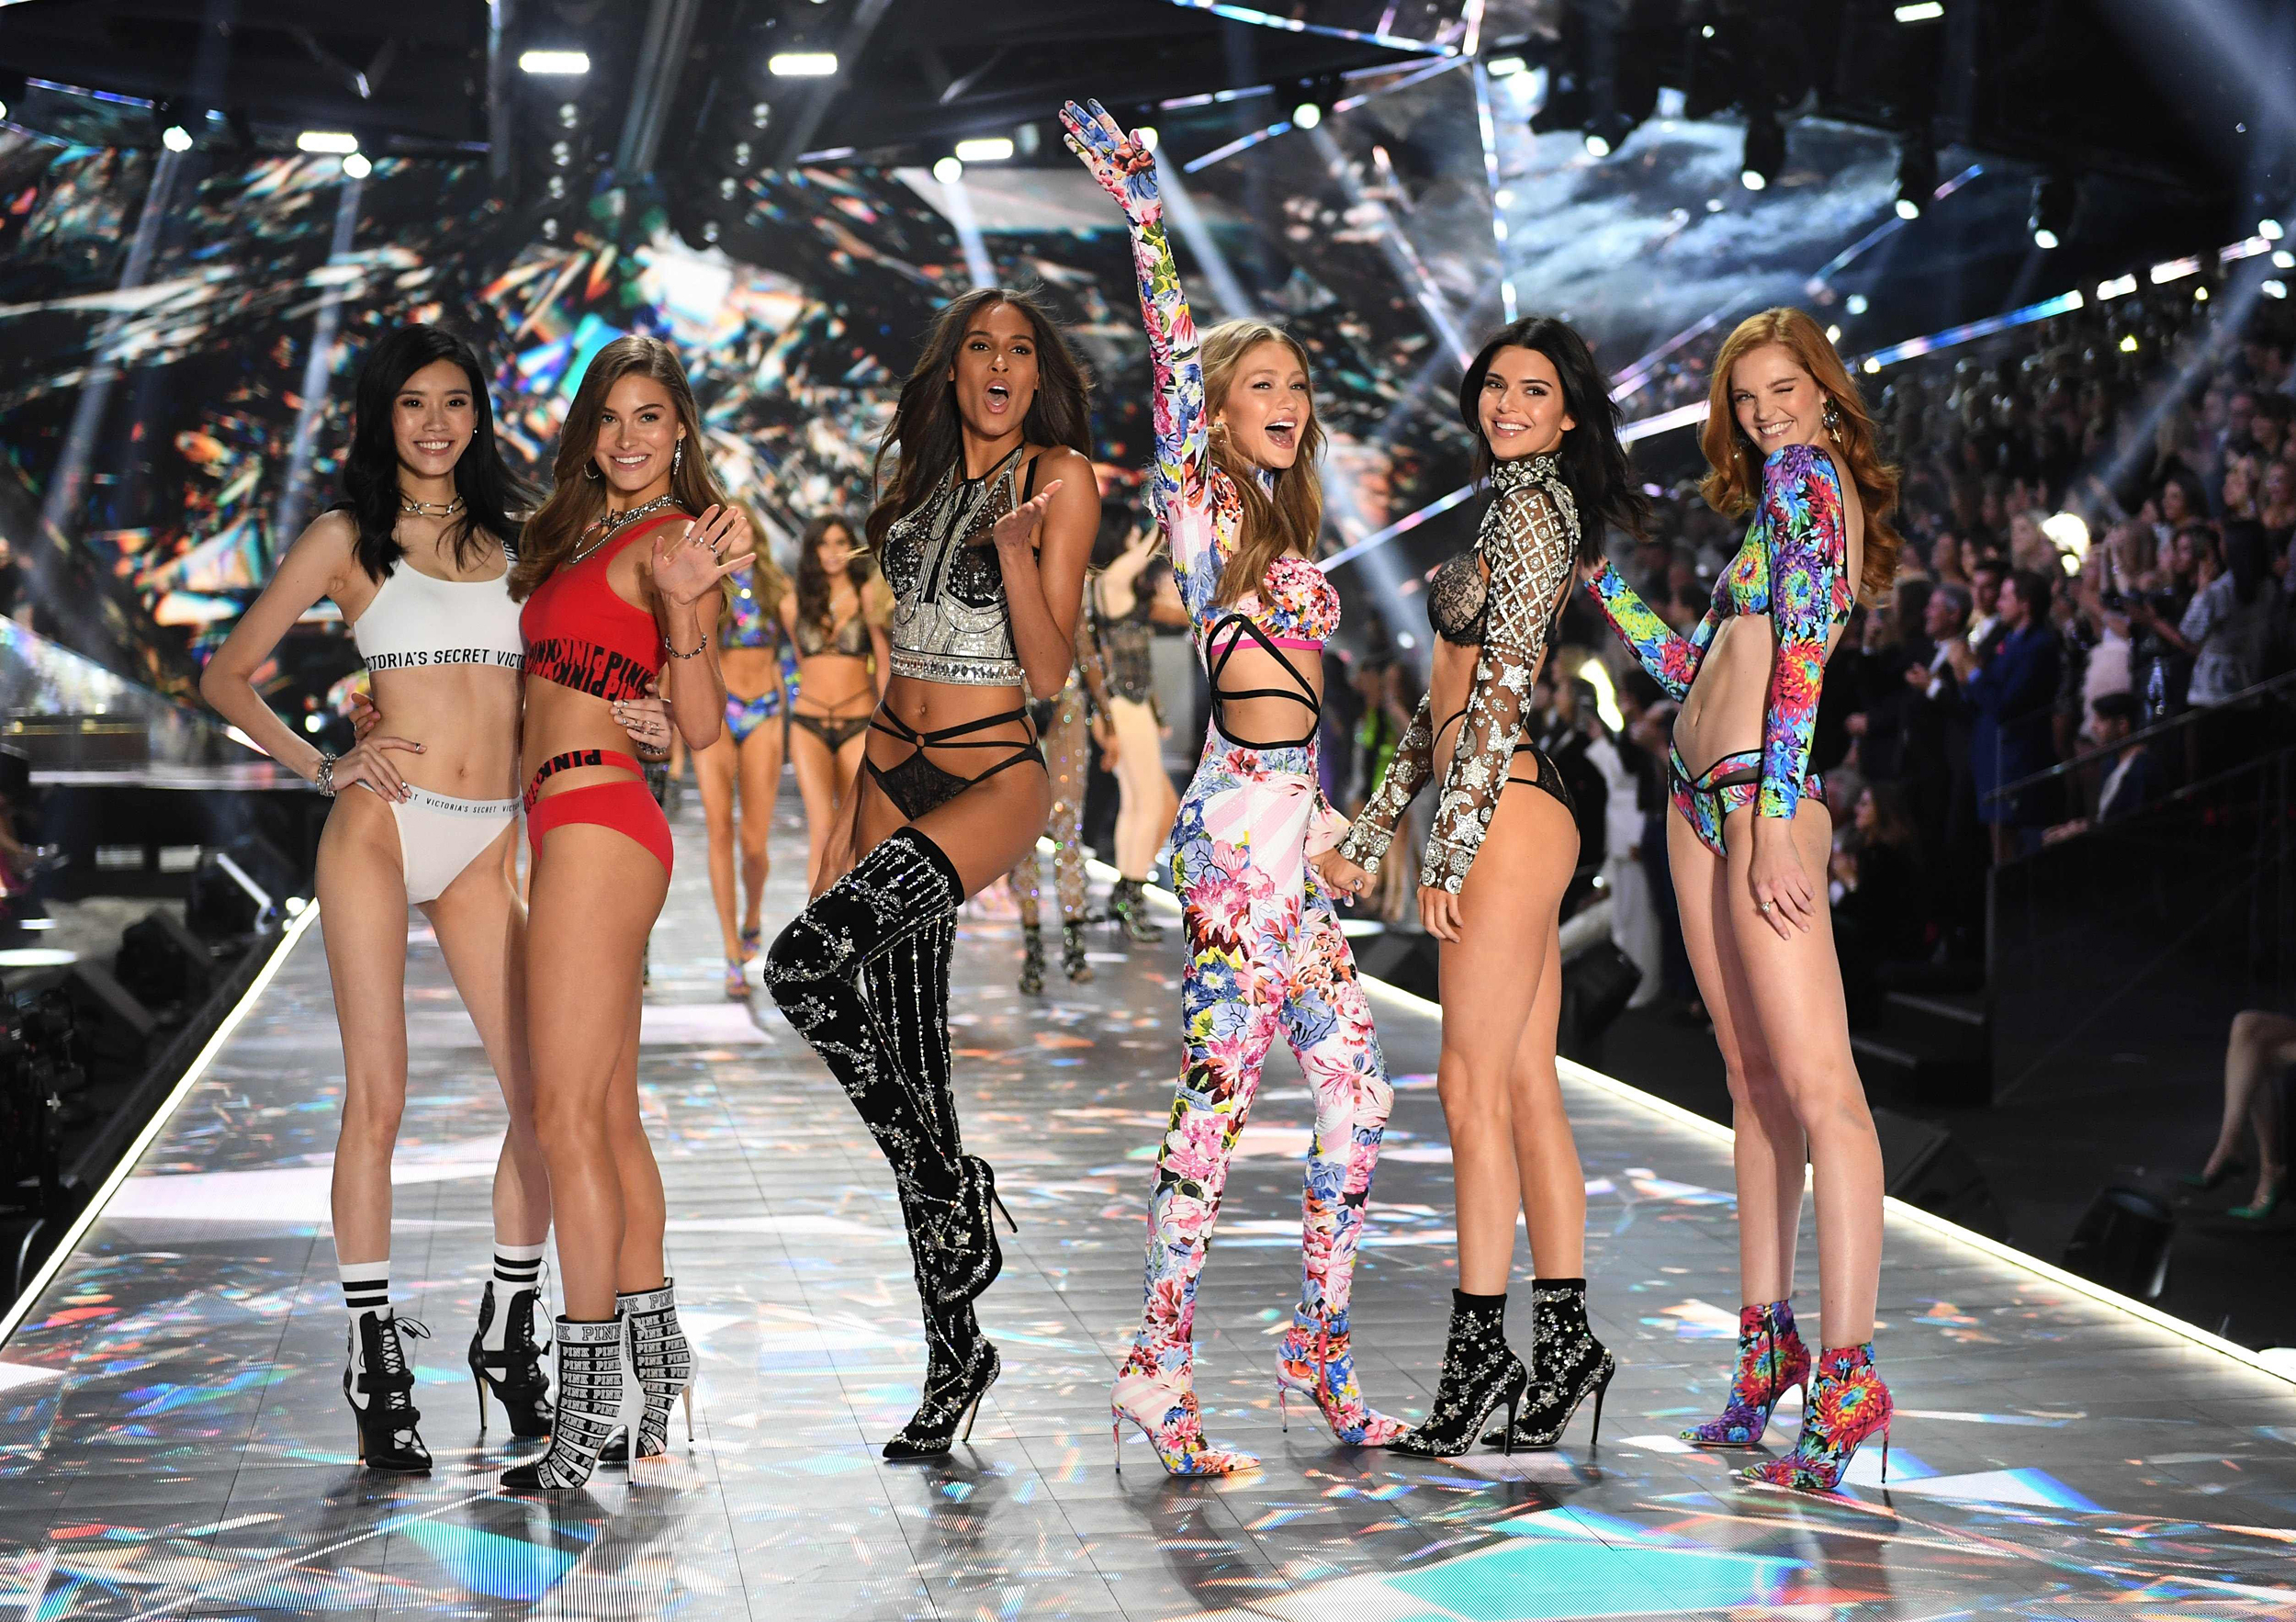 Victoria's Secret fashion show that has run since 2001 is canceled this year